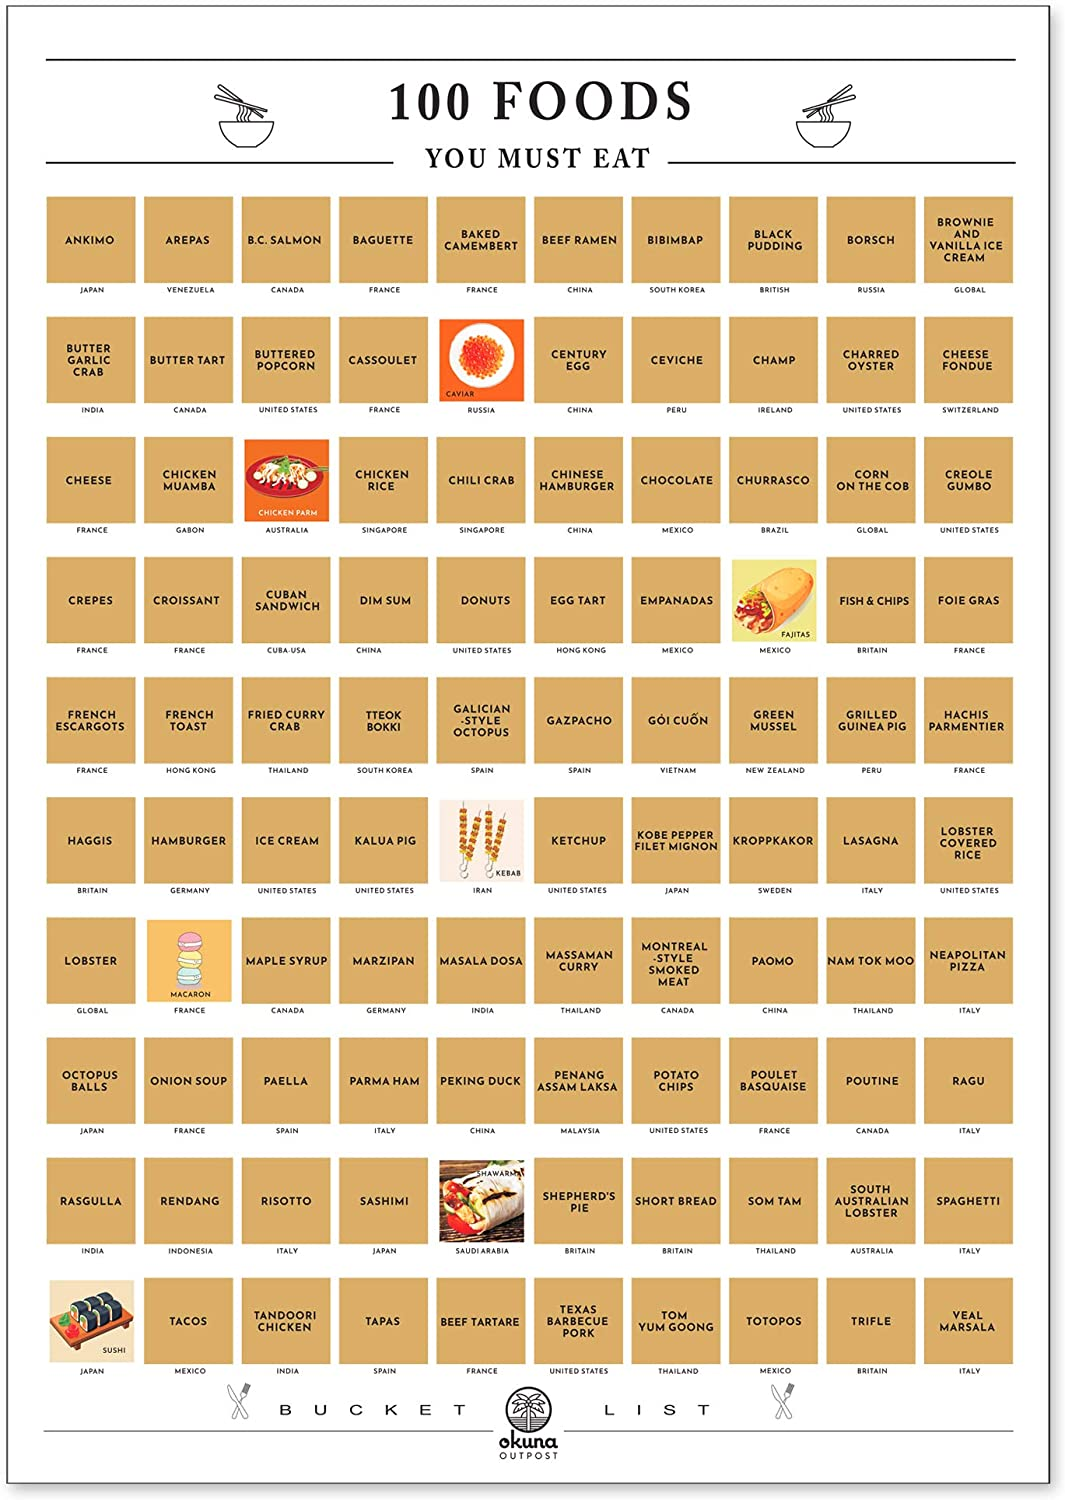 Scratch Off Poster, 100 Foods You Must Eat Bucket List (16.5 x 23.5 Inches)